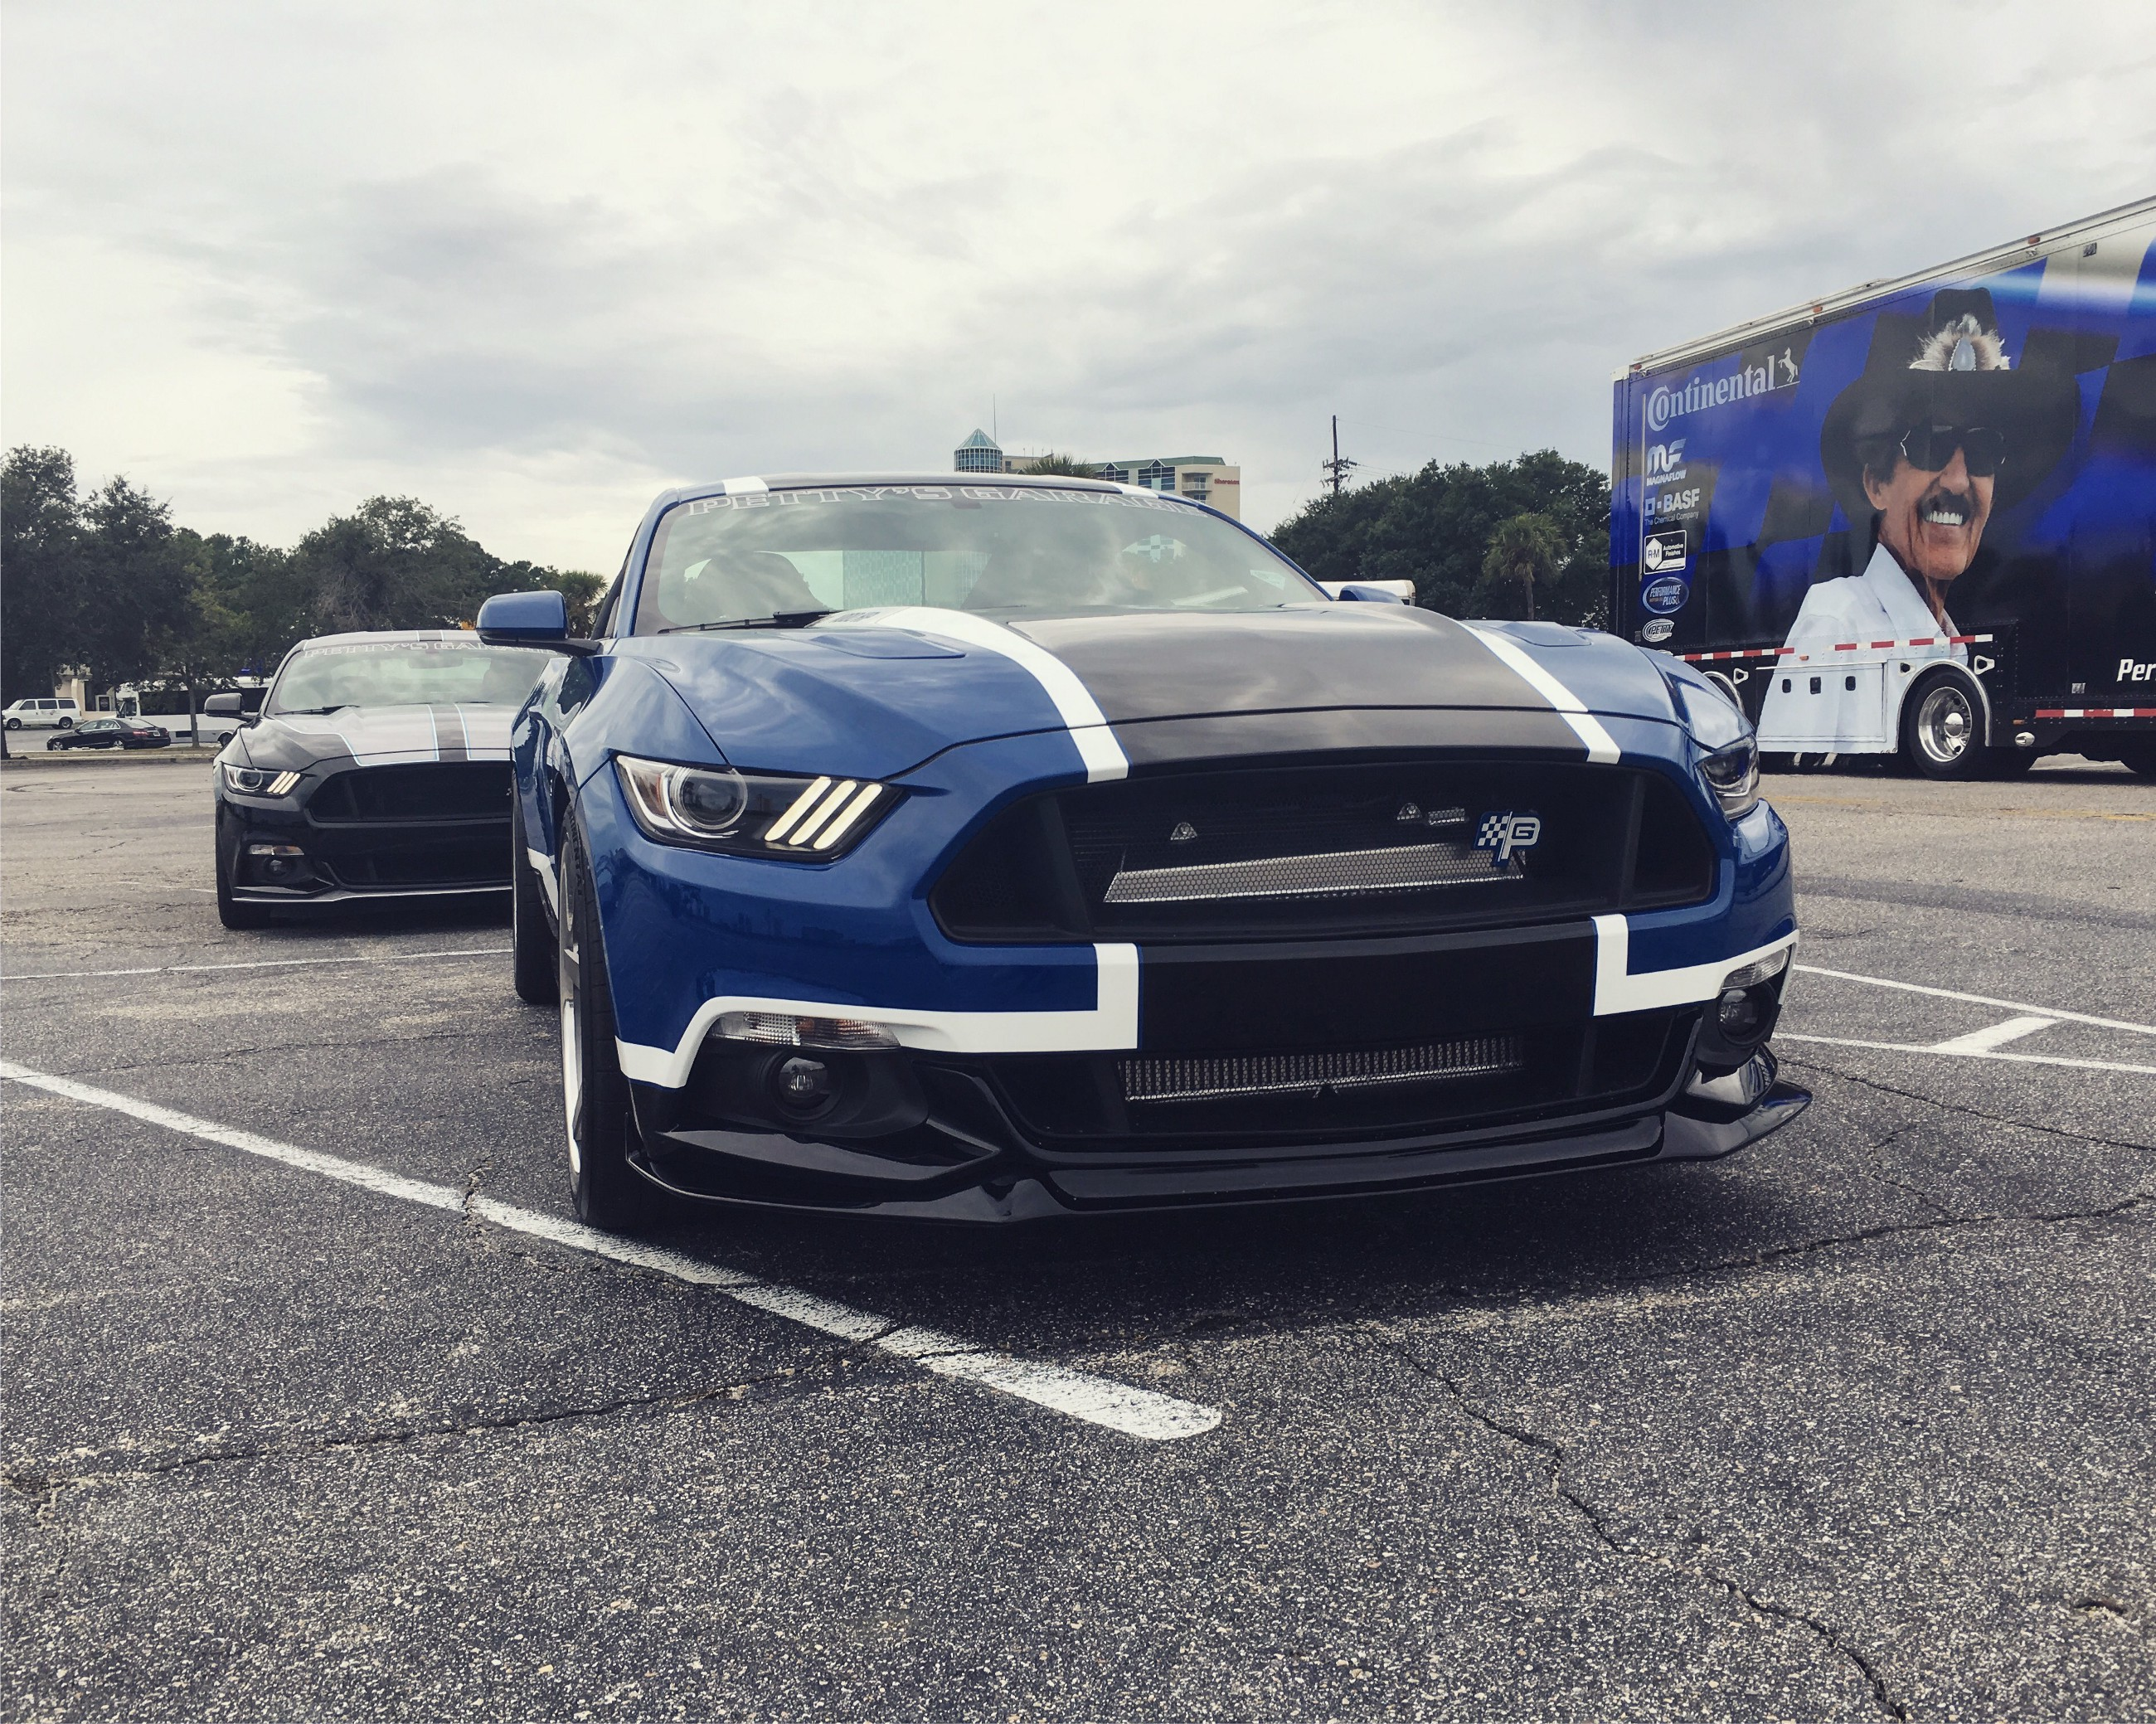 Petty S Garage Makes Its Presence Known During Mustang Week